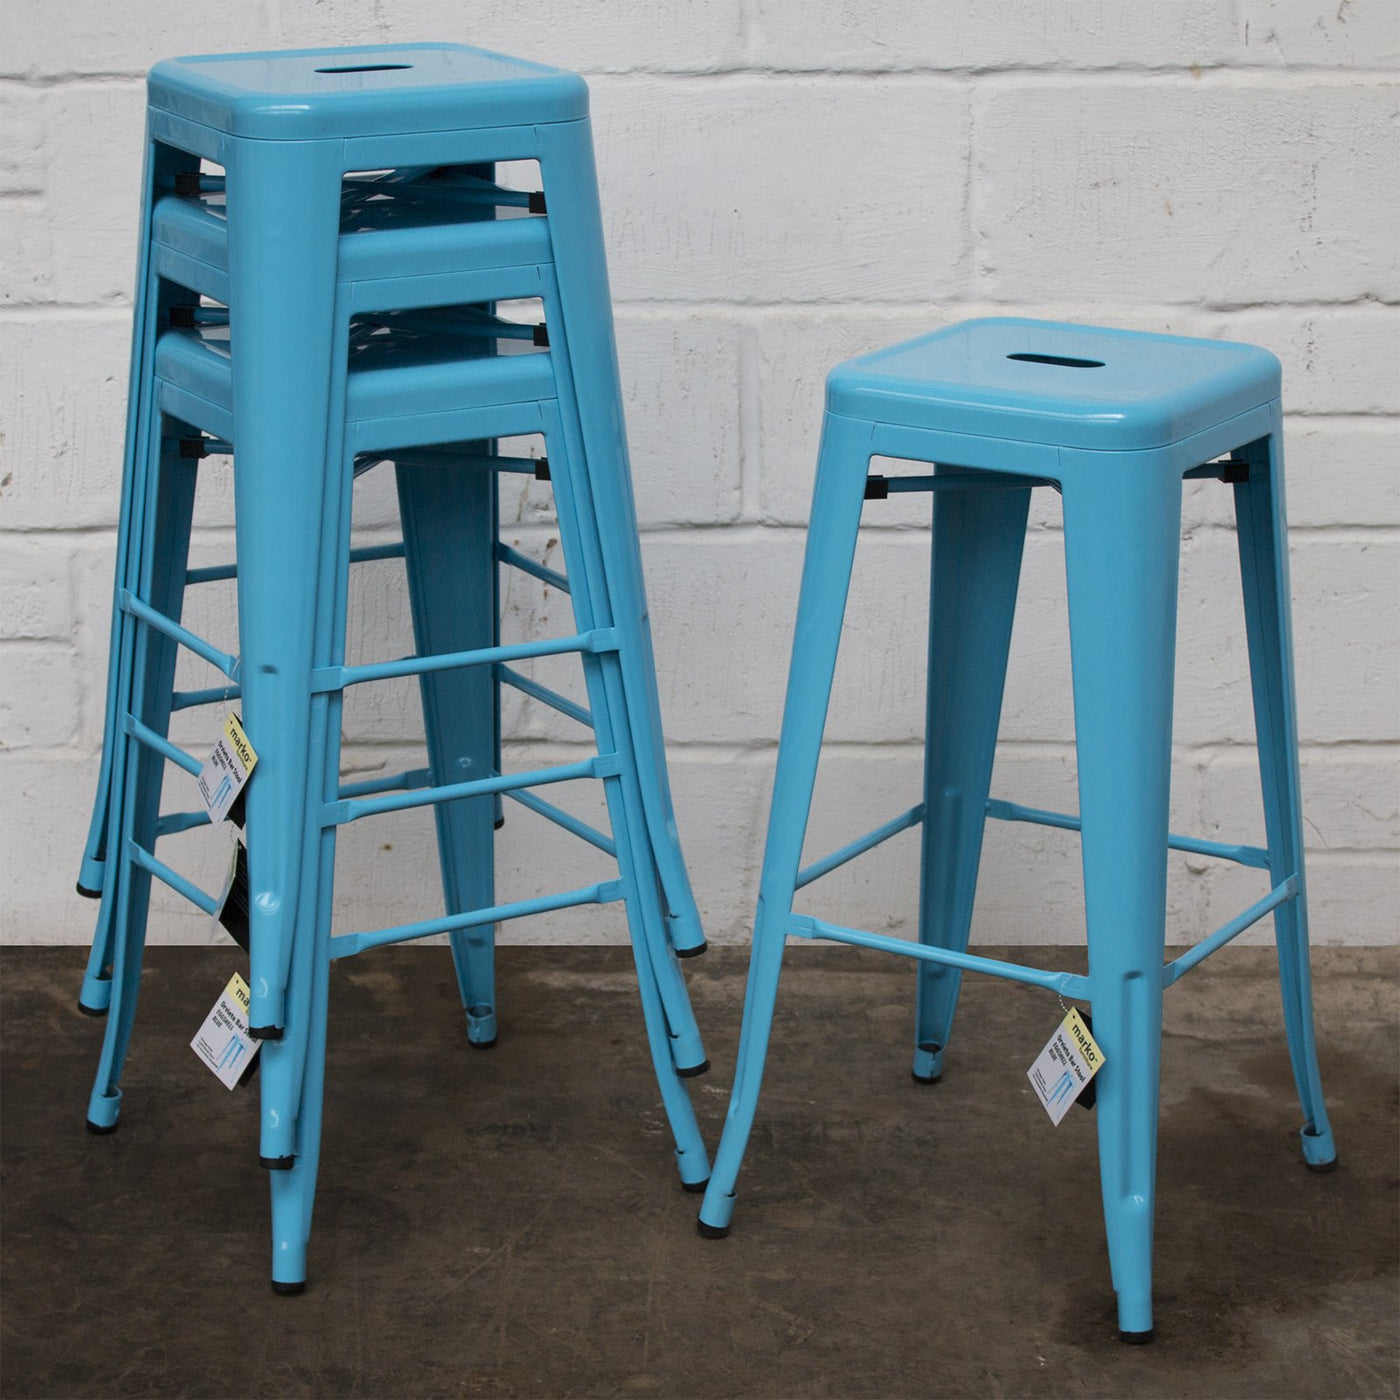 Phenomenal Orvieto Stool Eggshell Blue Caraccident5 Cool Chair Designs And Ideas Caraccident5Info